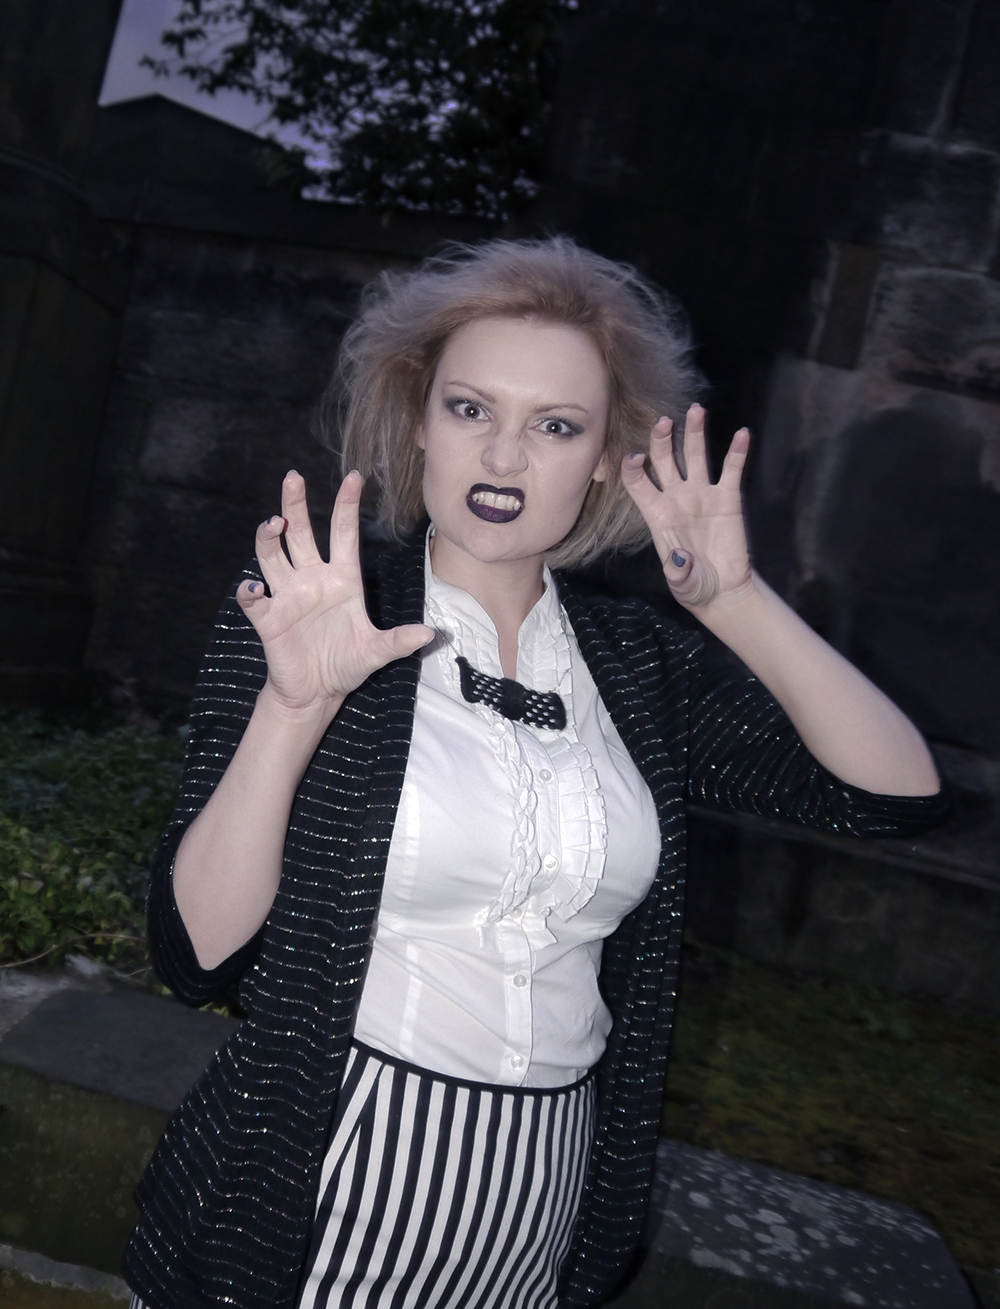 wearable halloween outfit, Beetlejuice girl costume, monochrome ghost costume, easy halloween costume, unlikely horror style icon, blogger halloween, St John's cemetery Edinburgh, creepy Edinburgh ghost, monochrome outfit, bowtie necklace, vintage halloween style